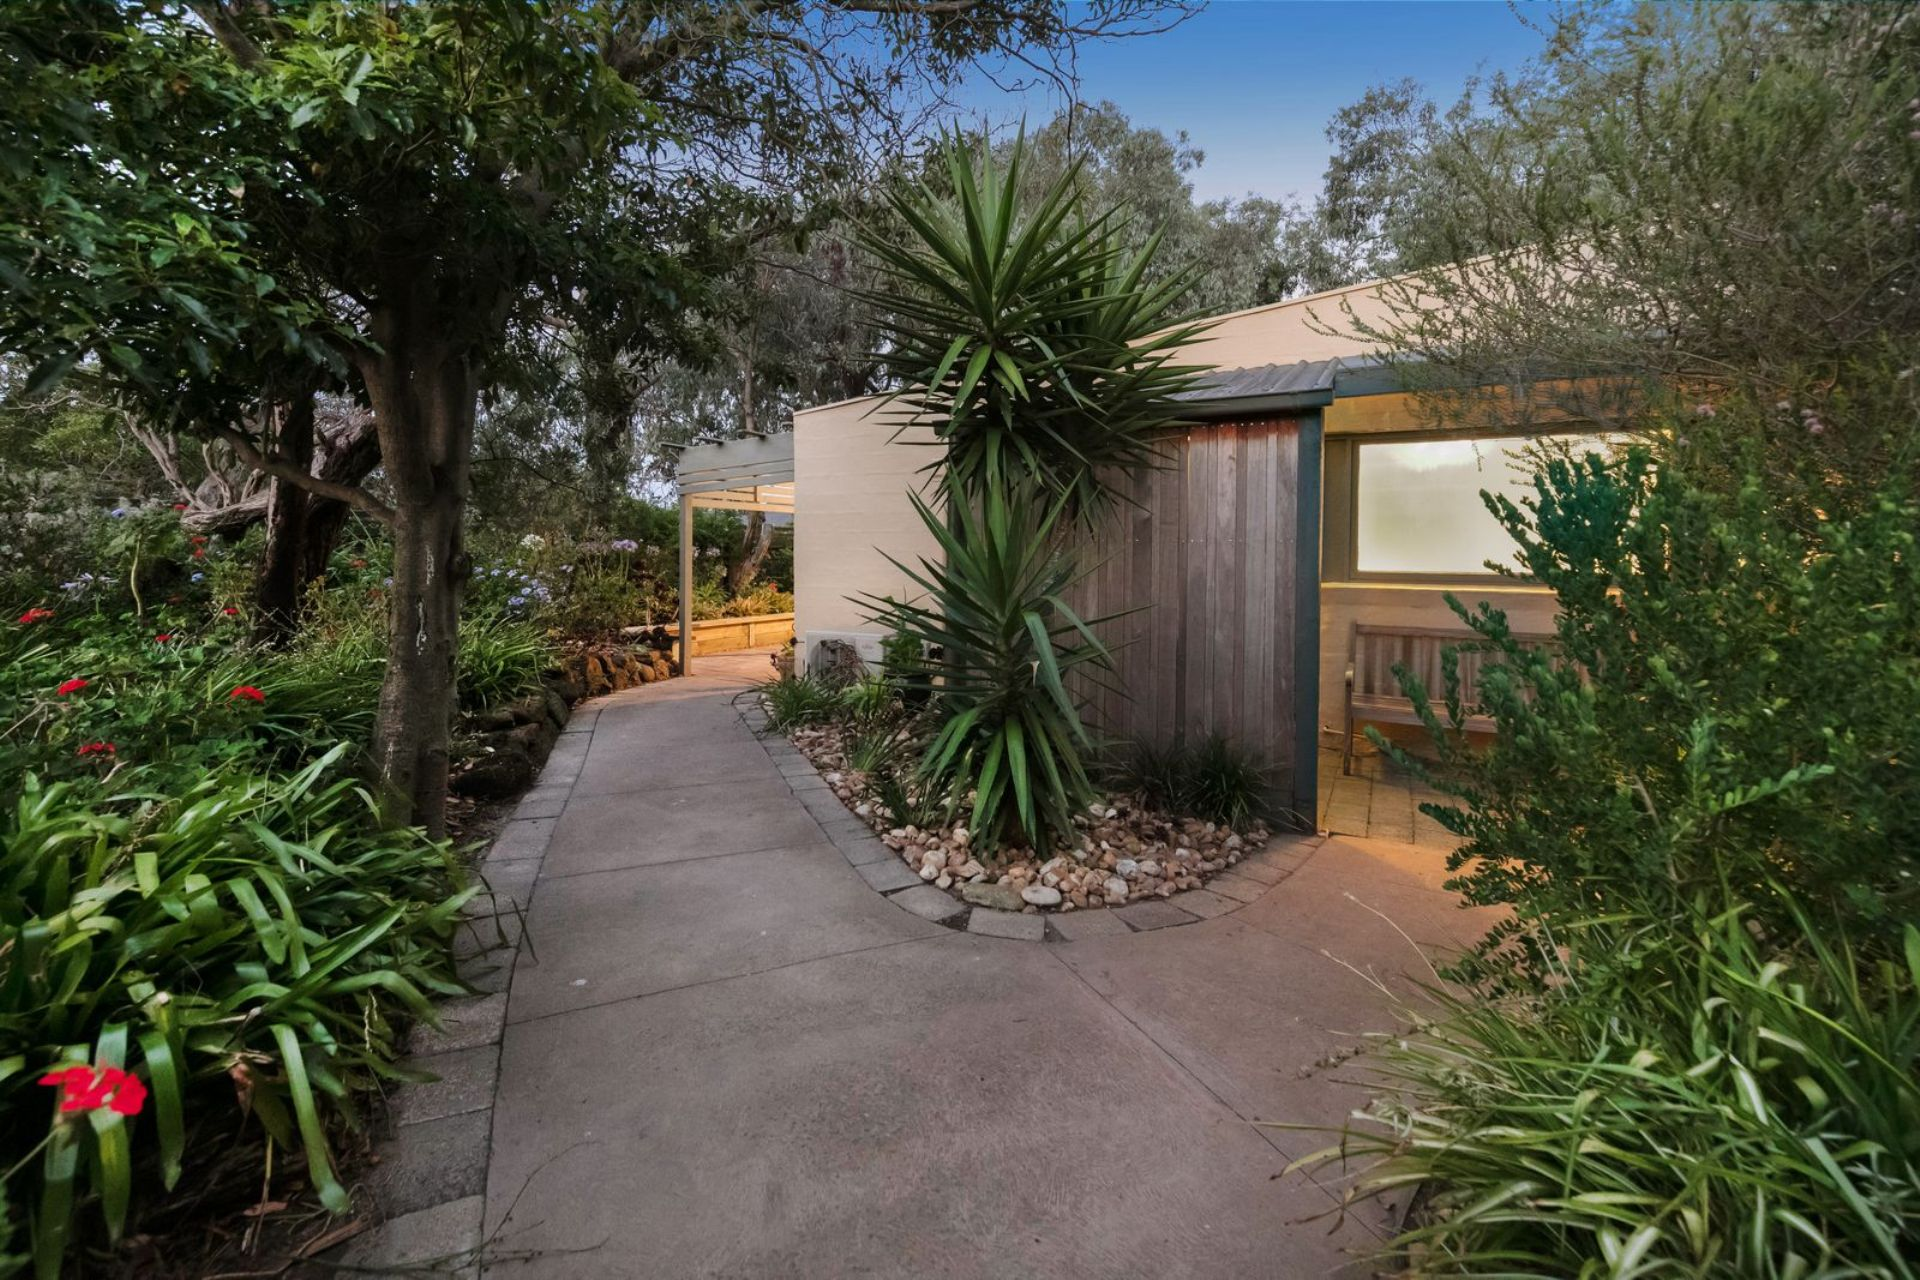 6/8-10 Johns Road, MORNINGTON, VIC, 3931 - Image